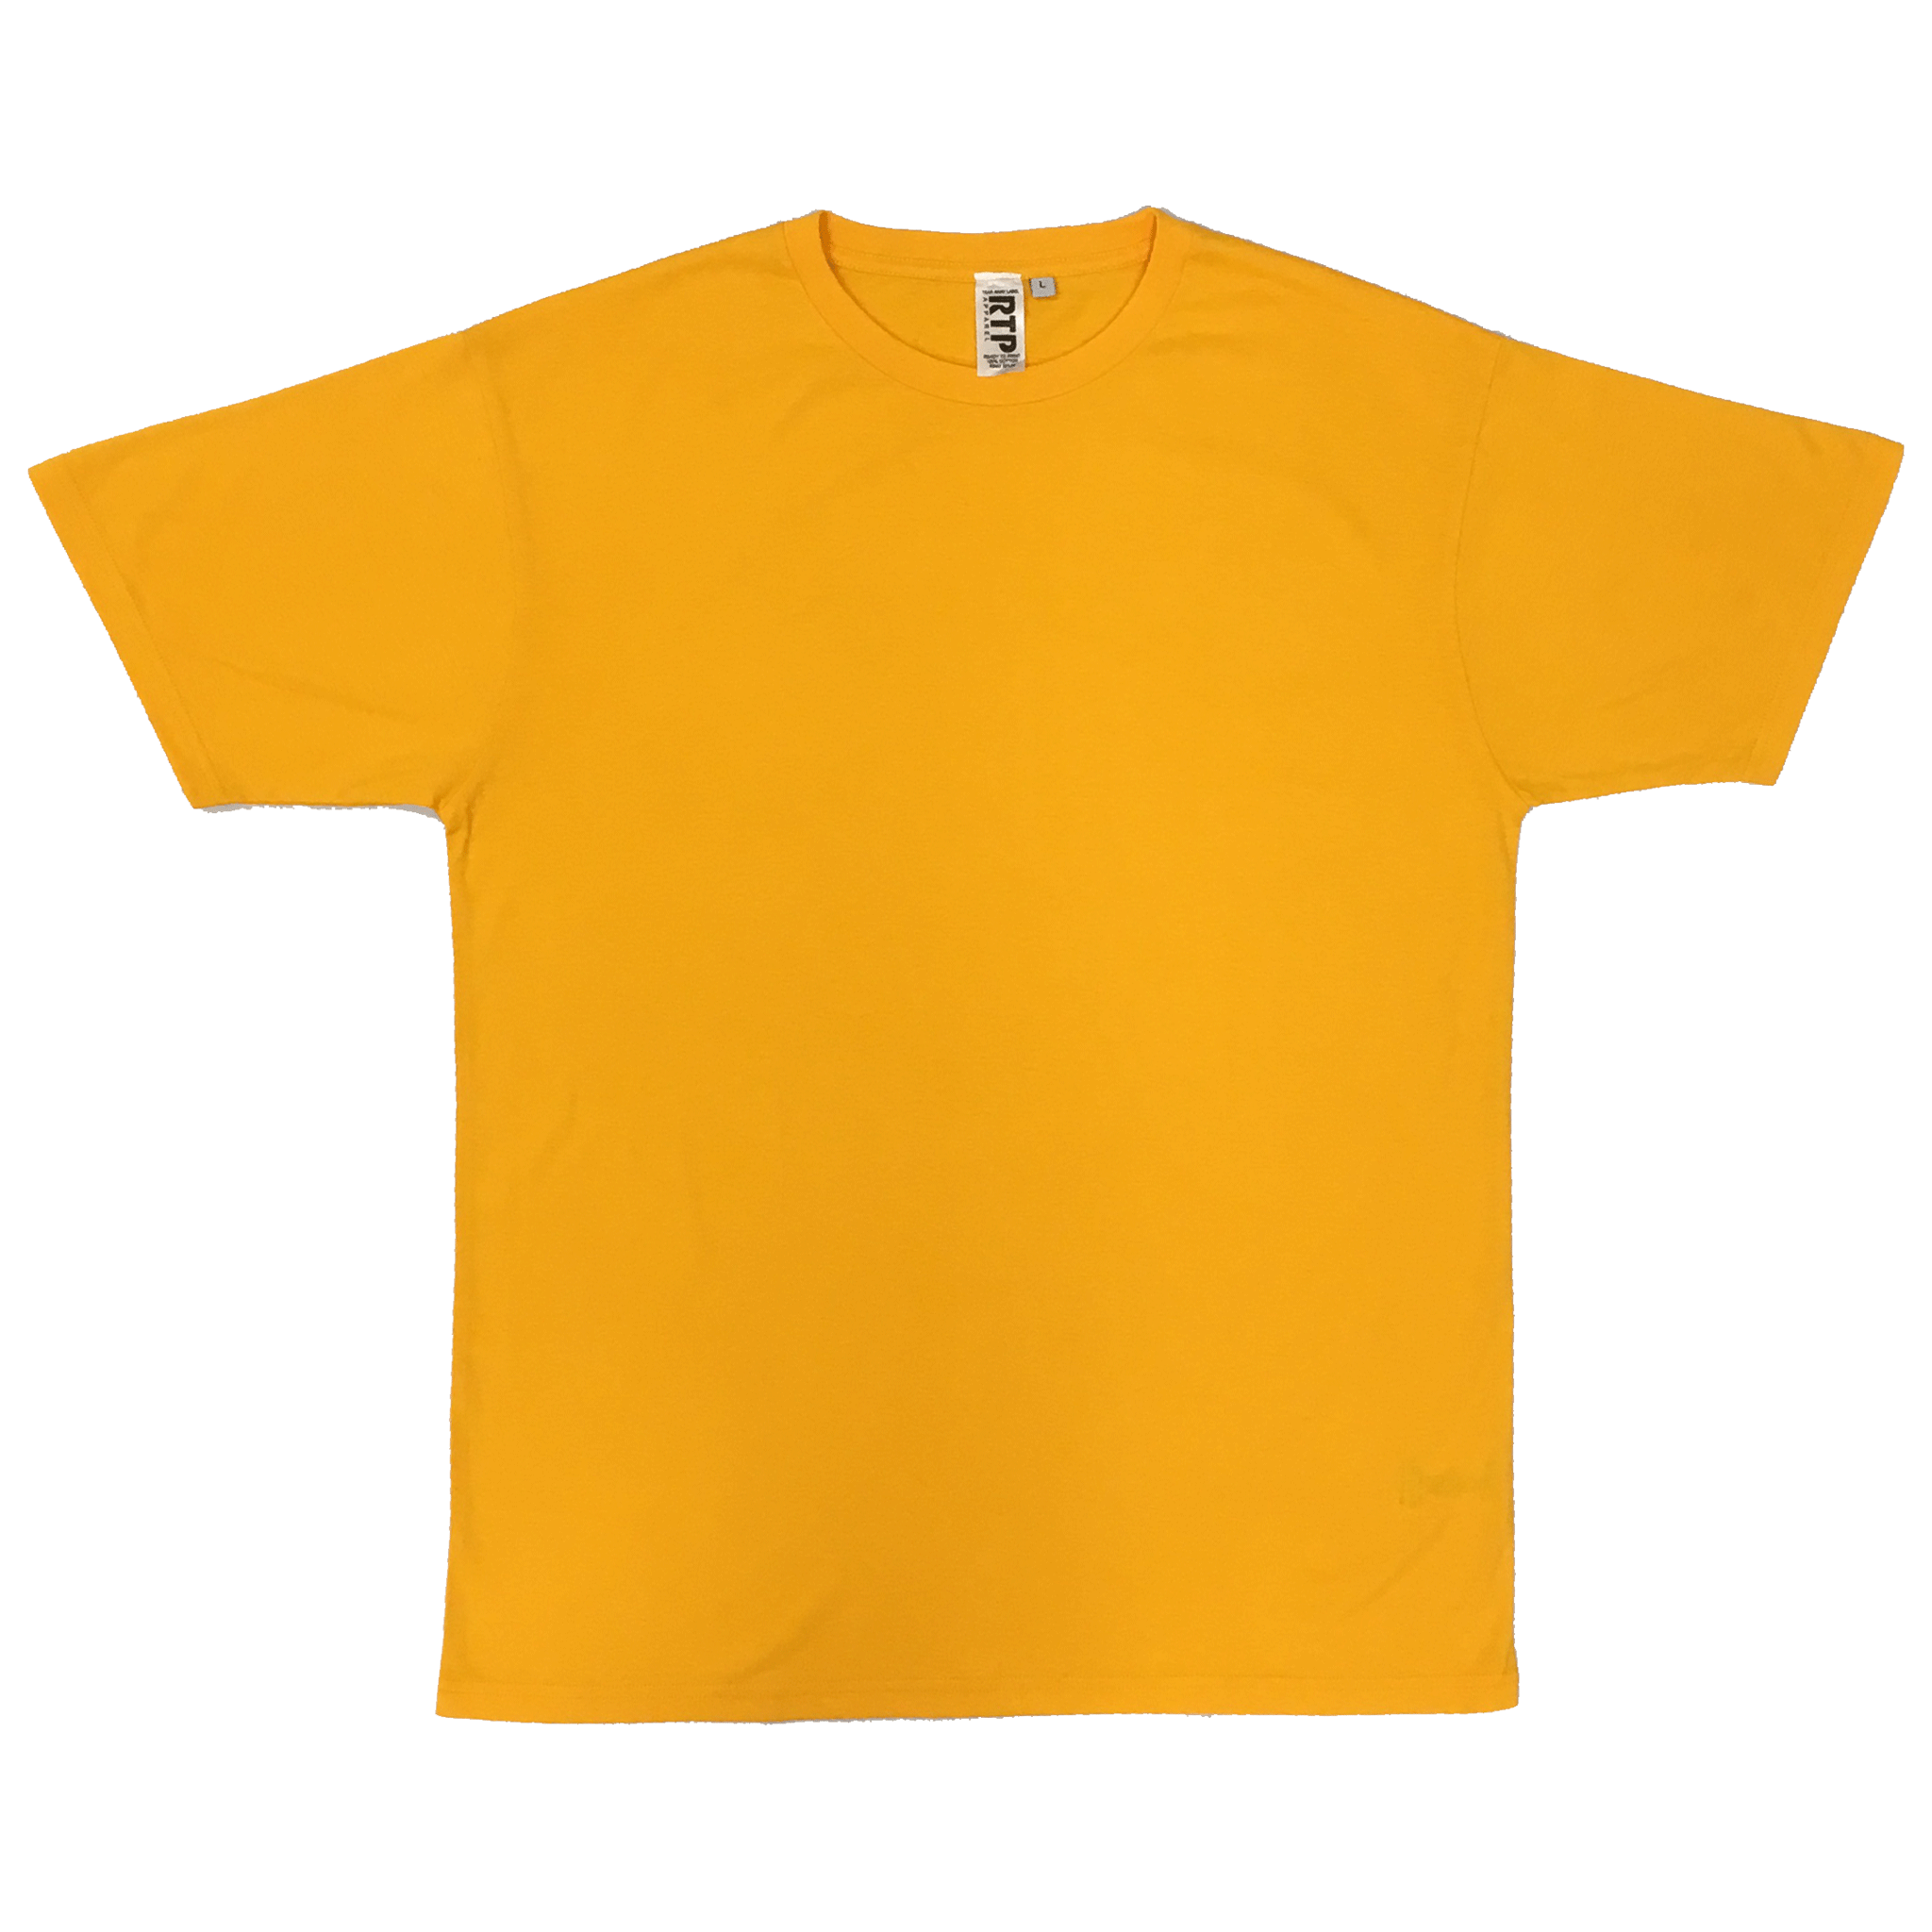 Gold - 1600 - DTG Ready To Print Crew Neck T-Shirt